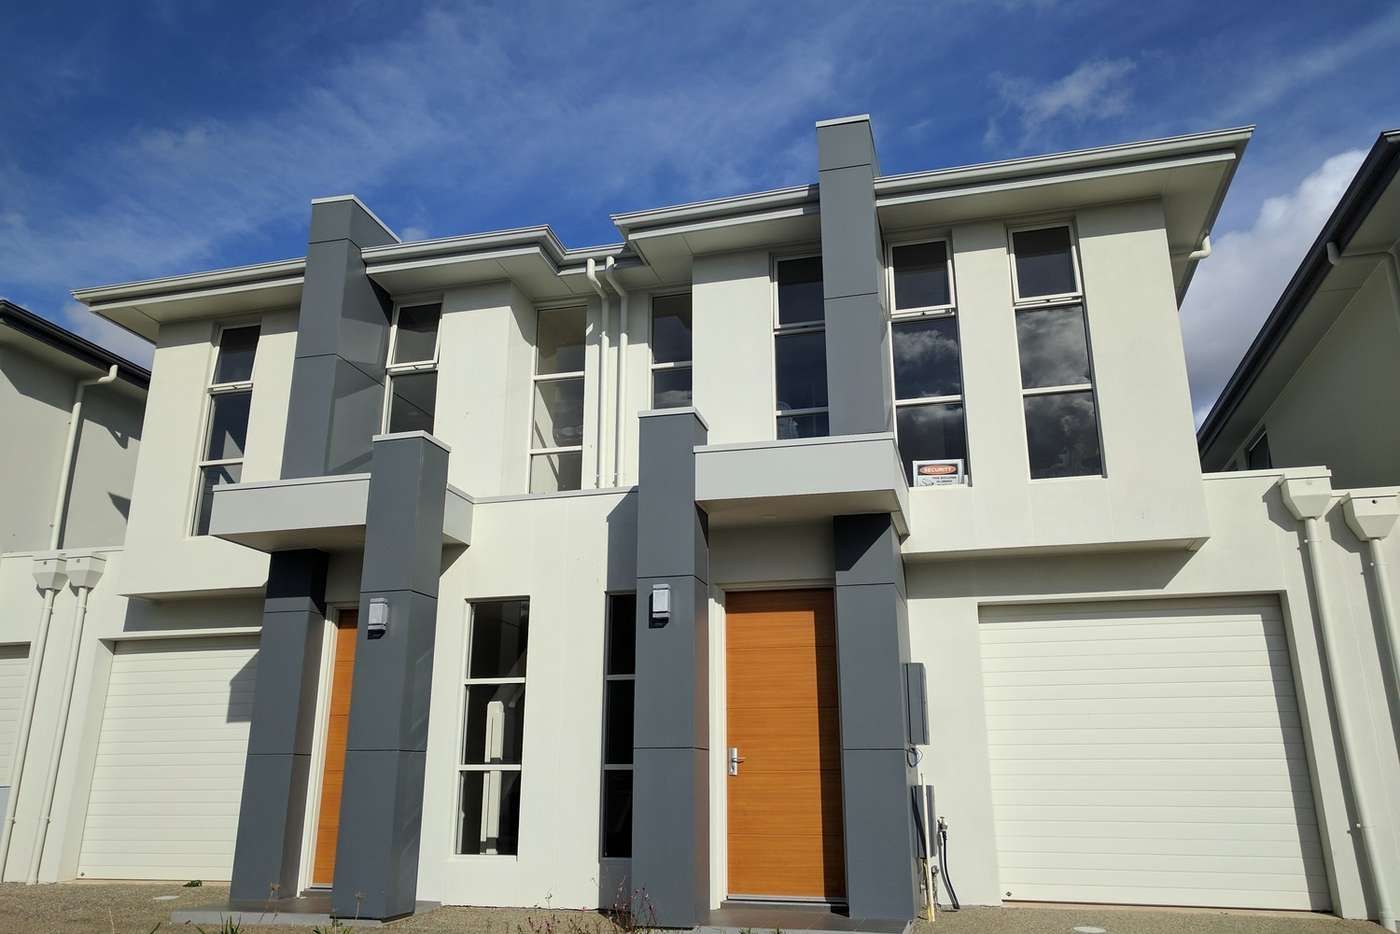 Main view of Homely house listing, 22 Verco Avenue, Campbelltown SA 5074